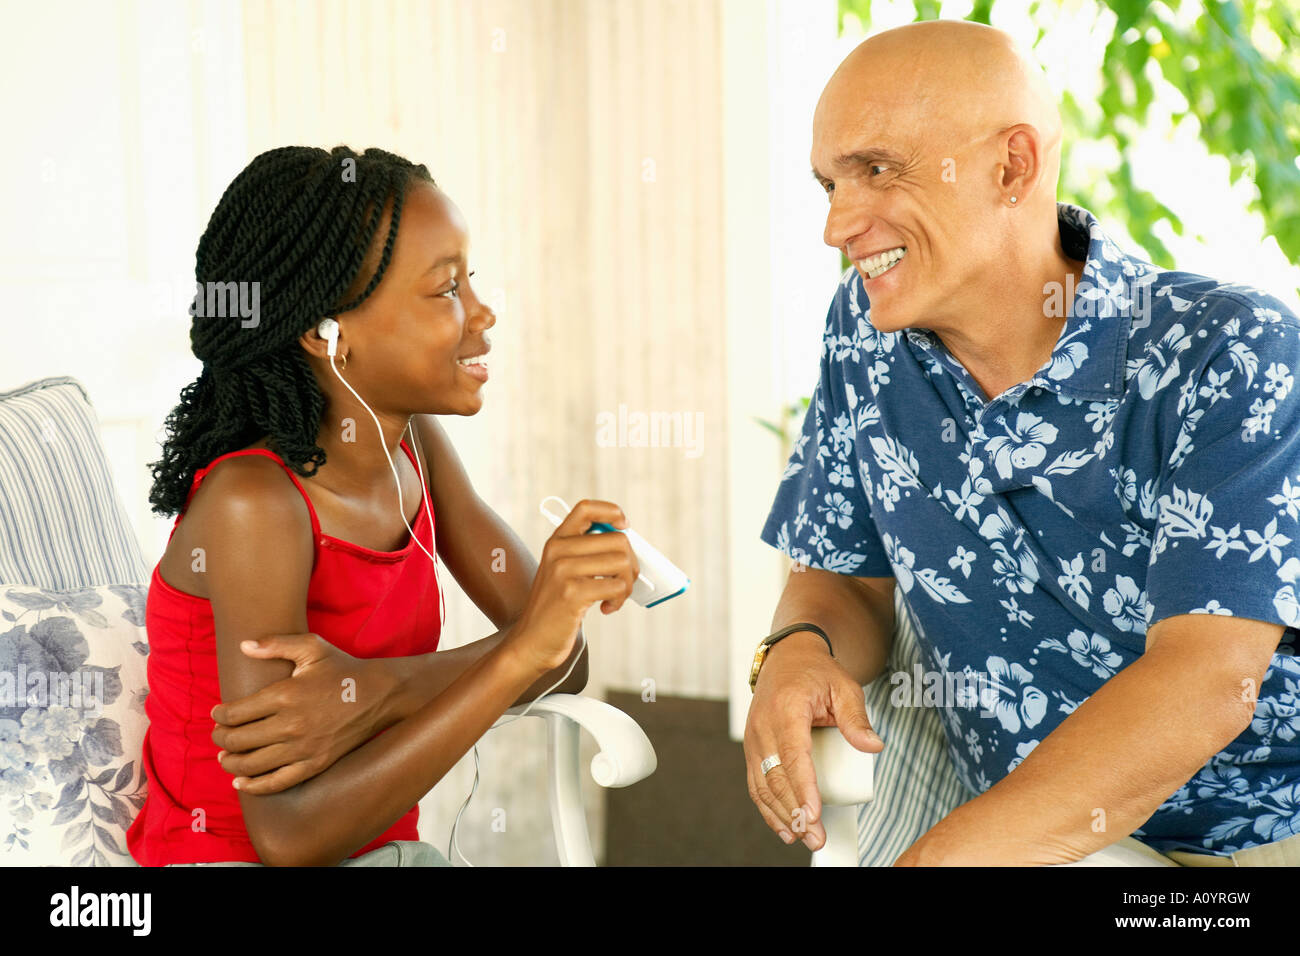 Young African Girl Talking To Older Caucasian Man Stock Photo